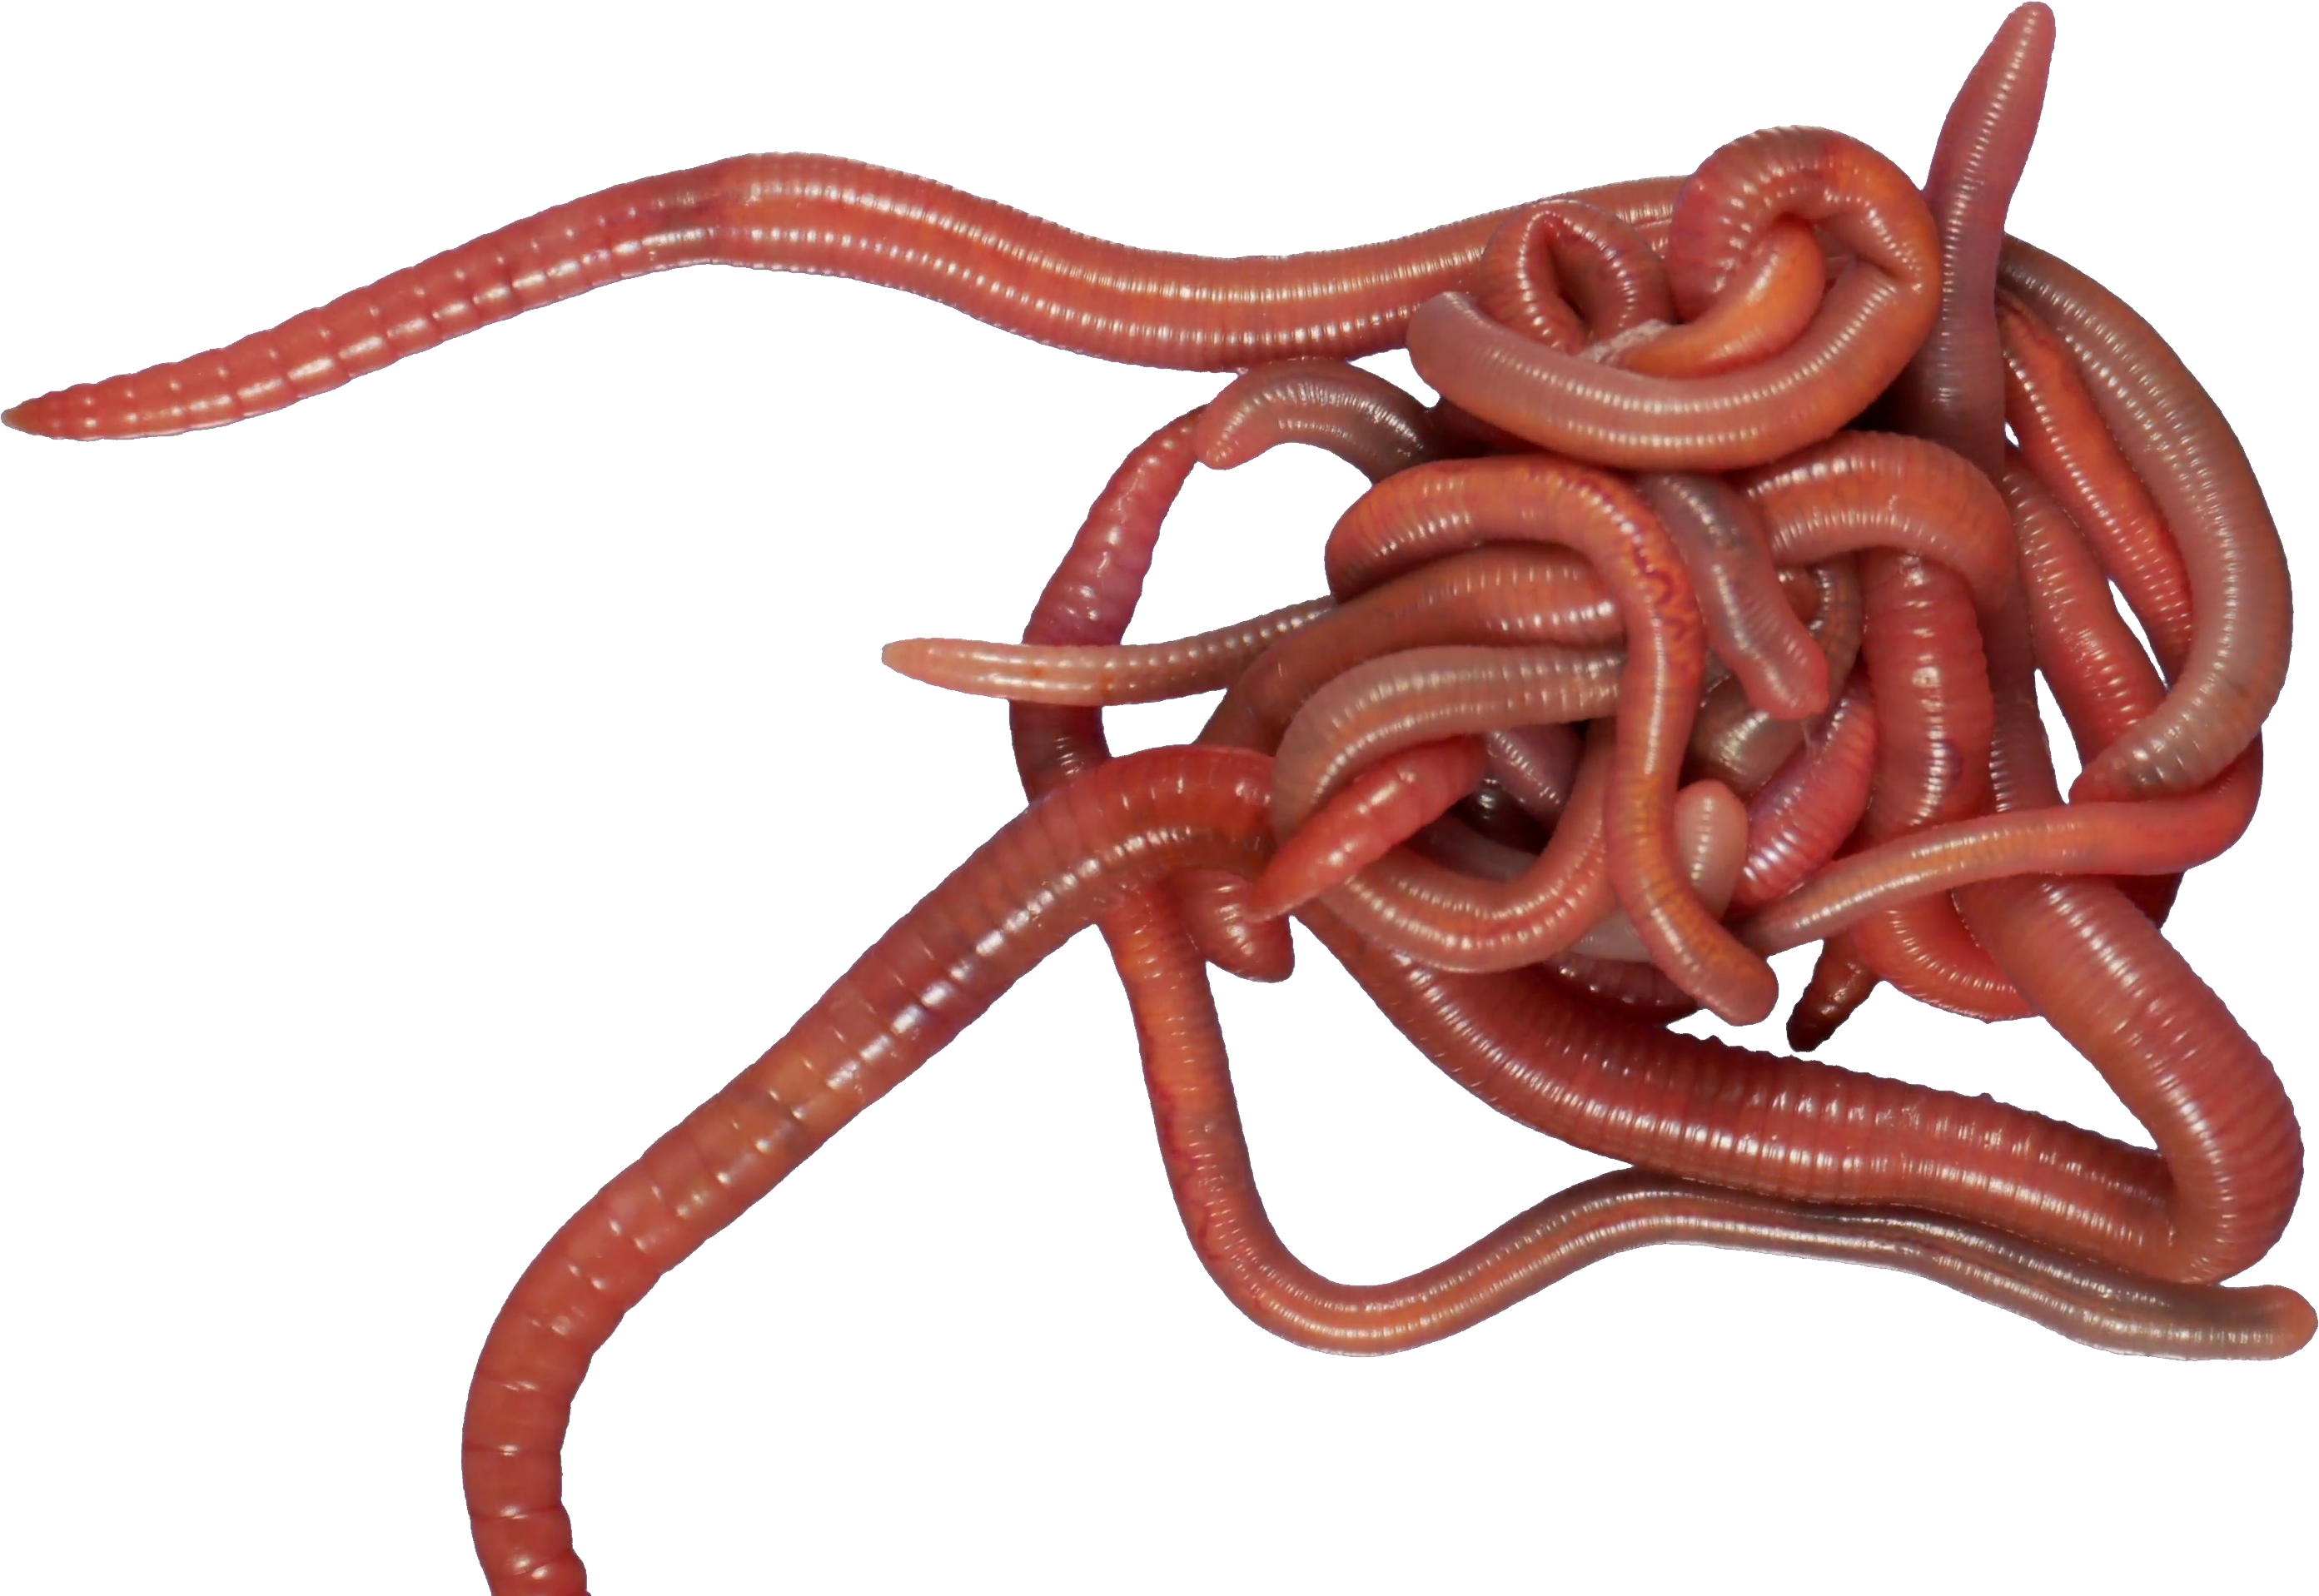 Worms PNG images free download, worm PNG.